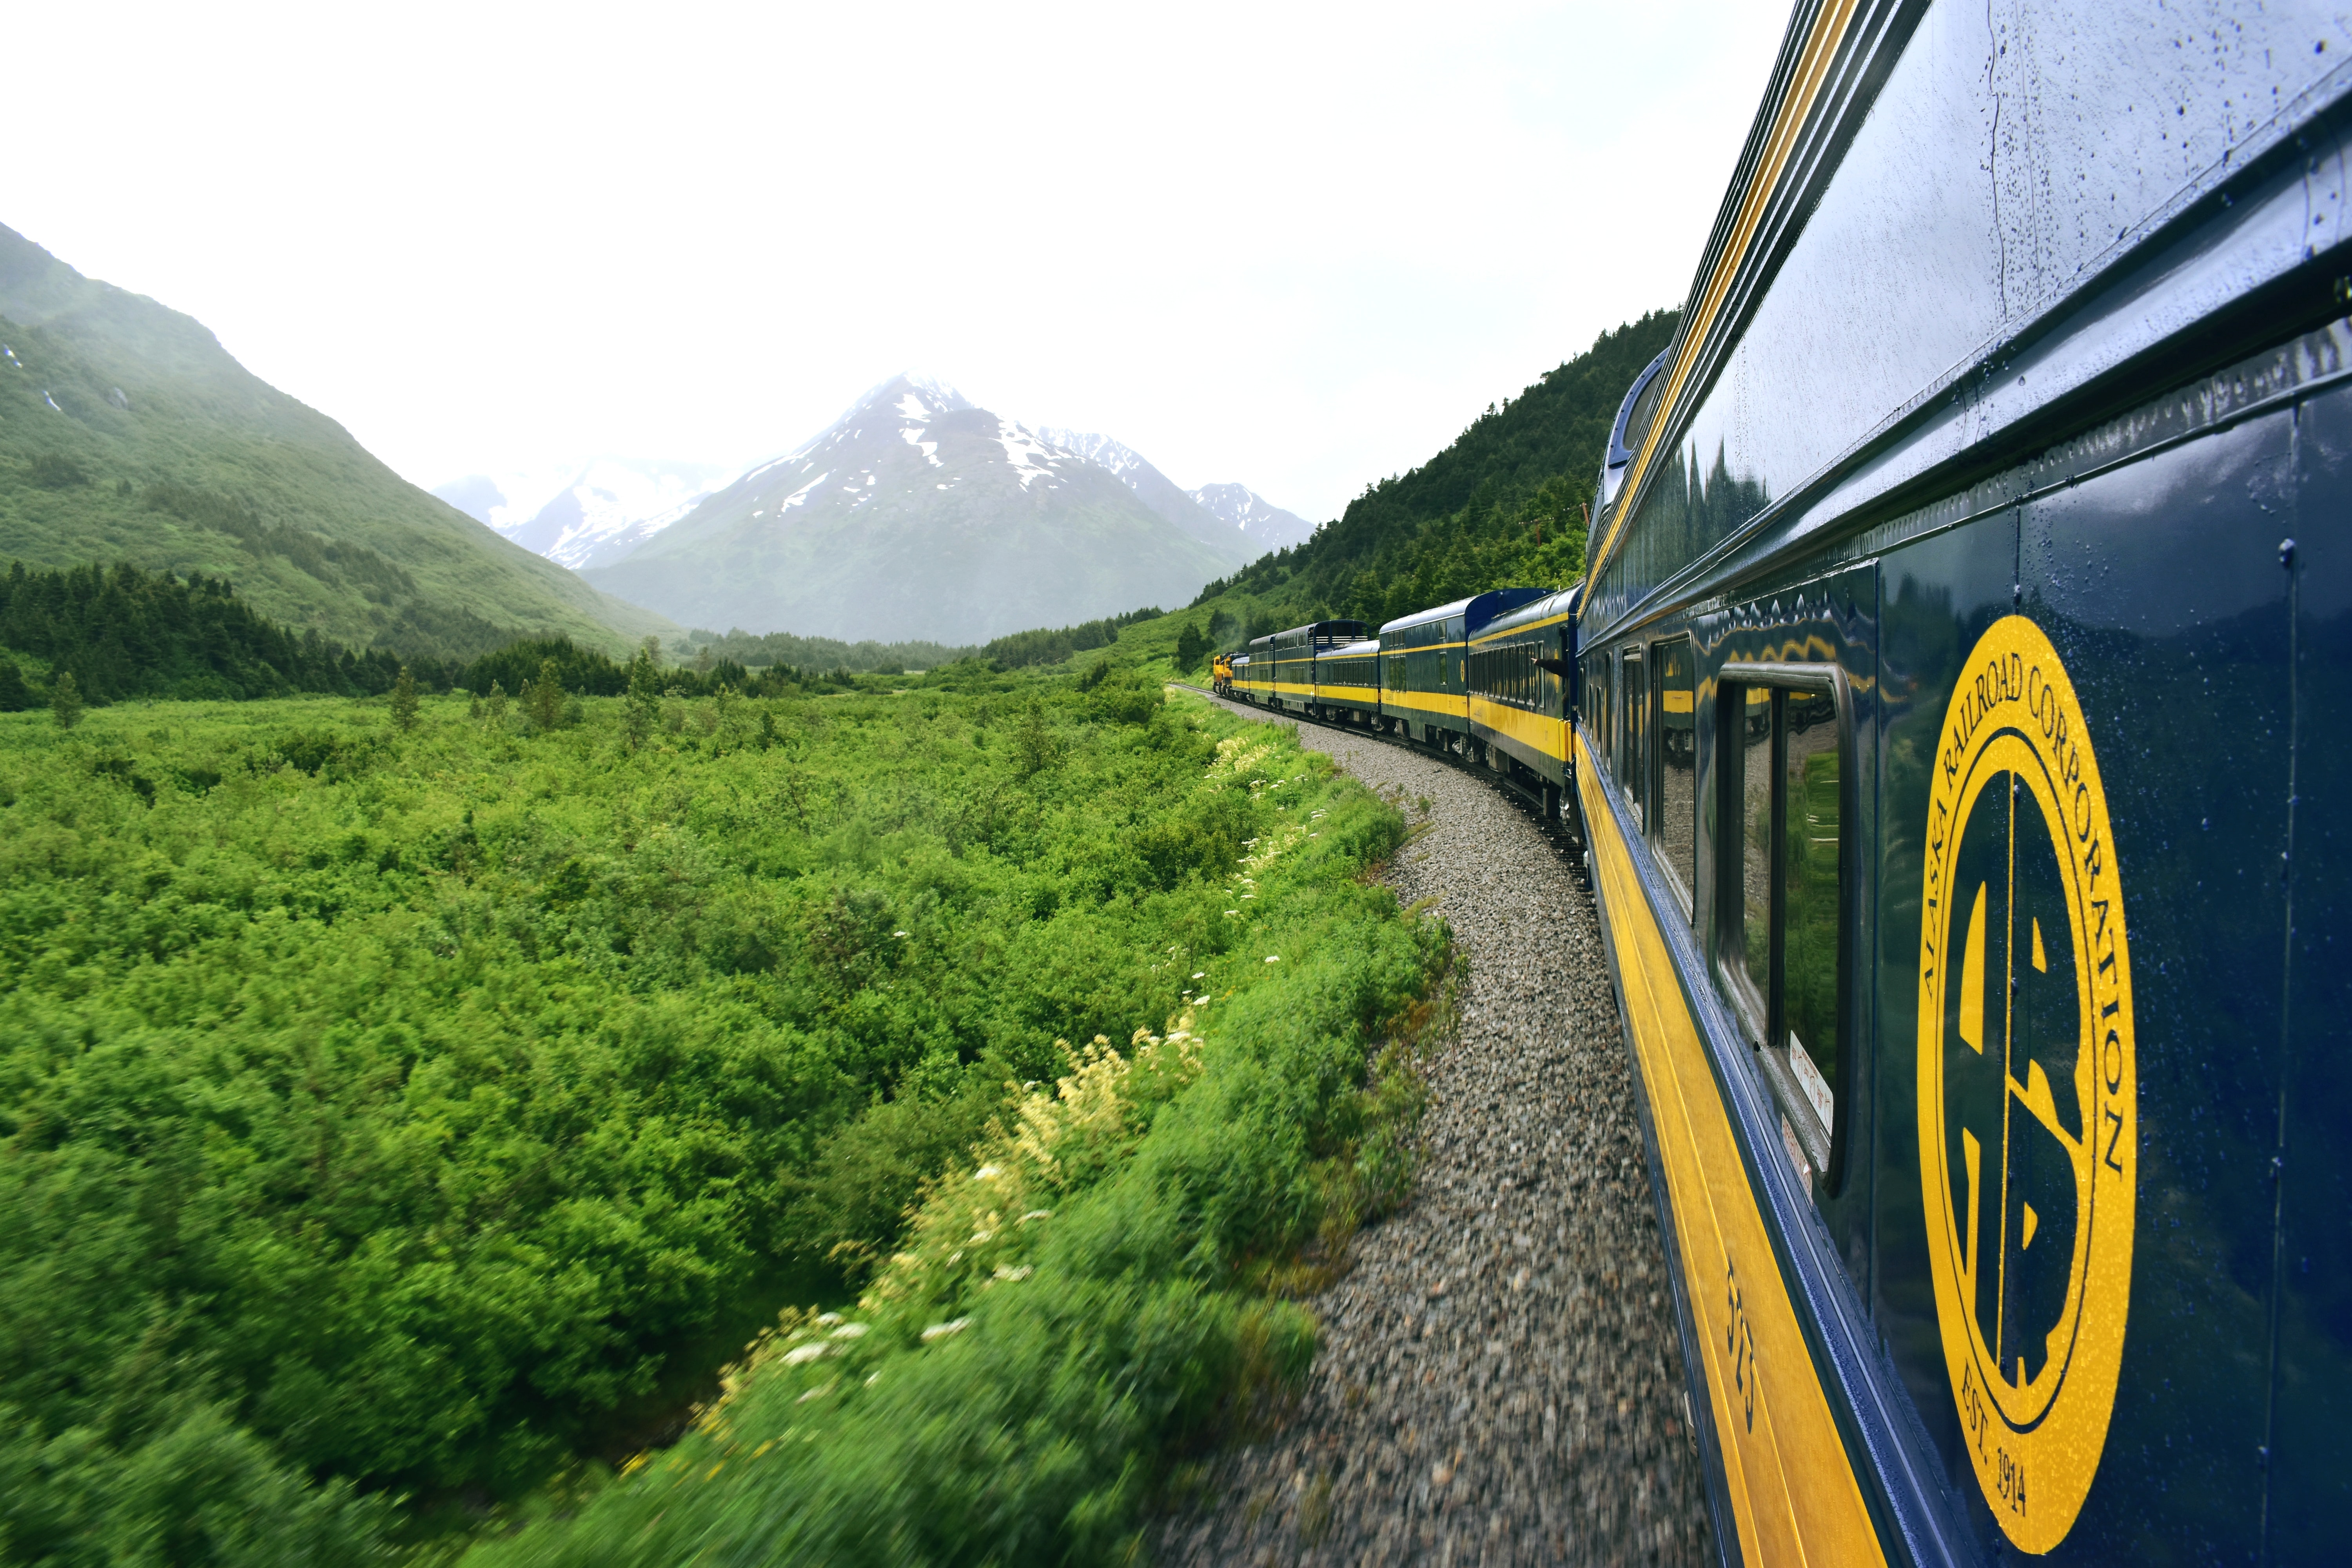 train near mountains